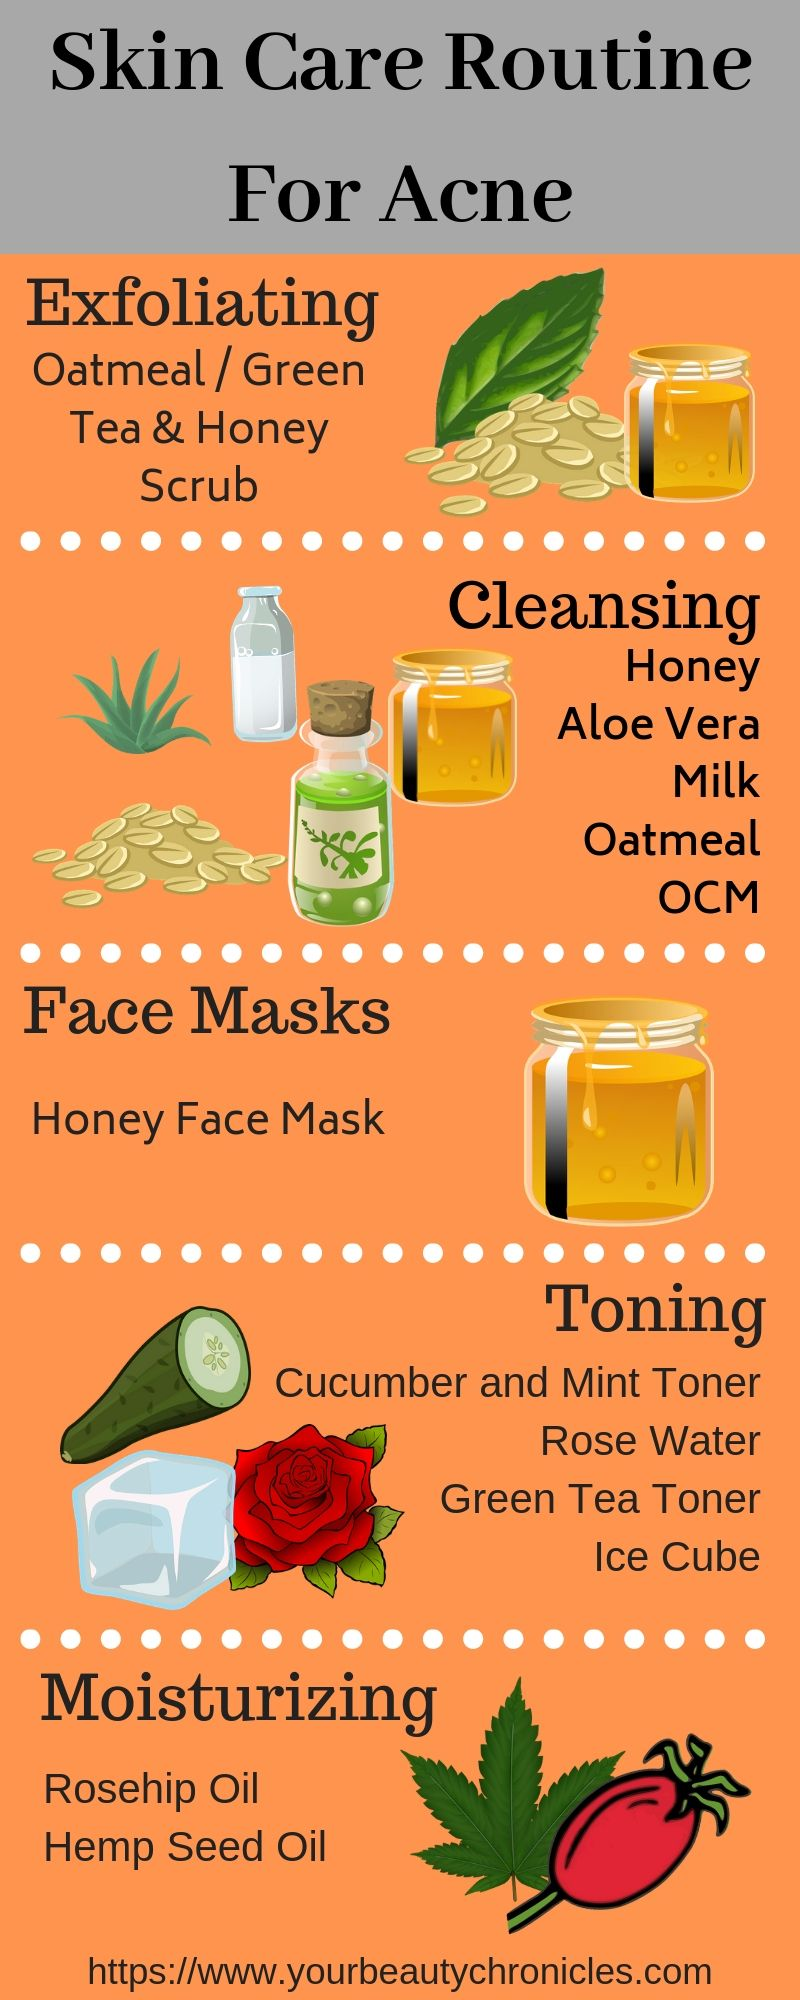 The All Natural Skin Care Routine For Acne With Images All